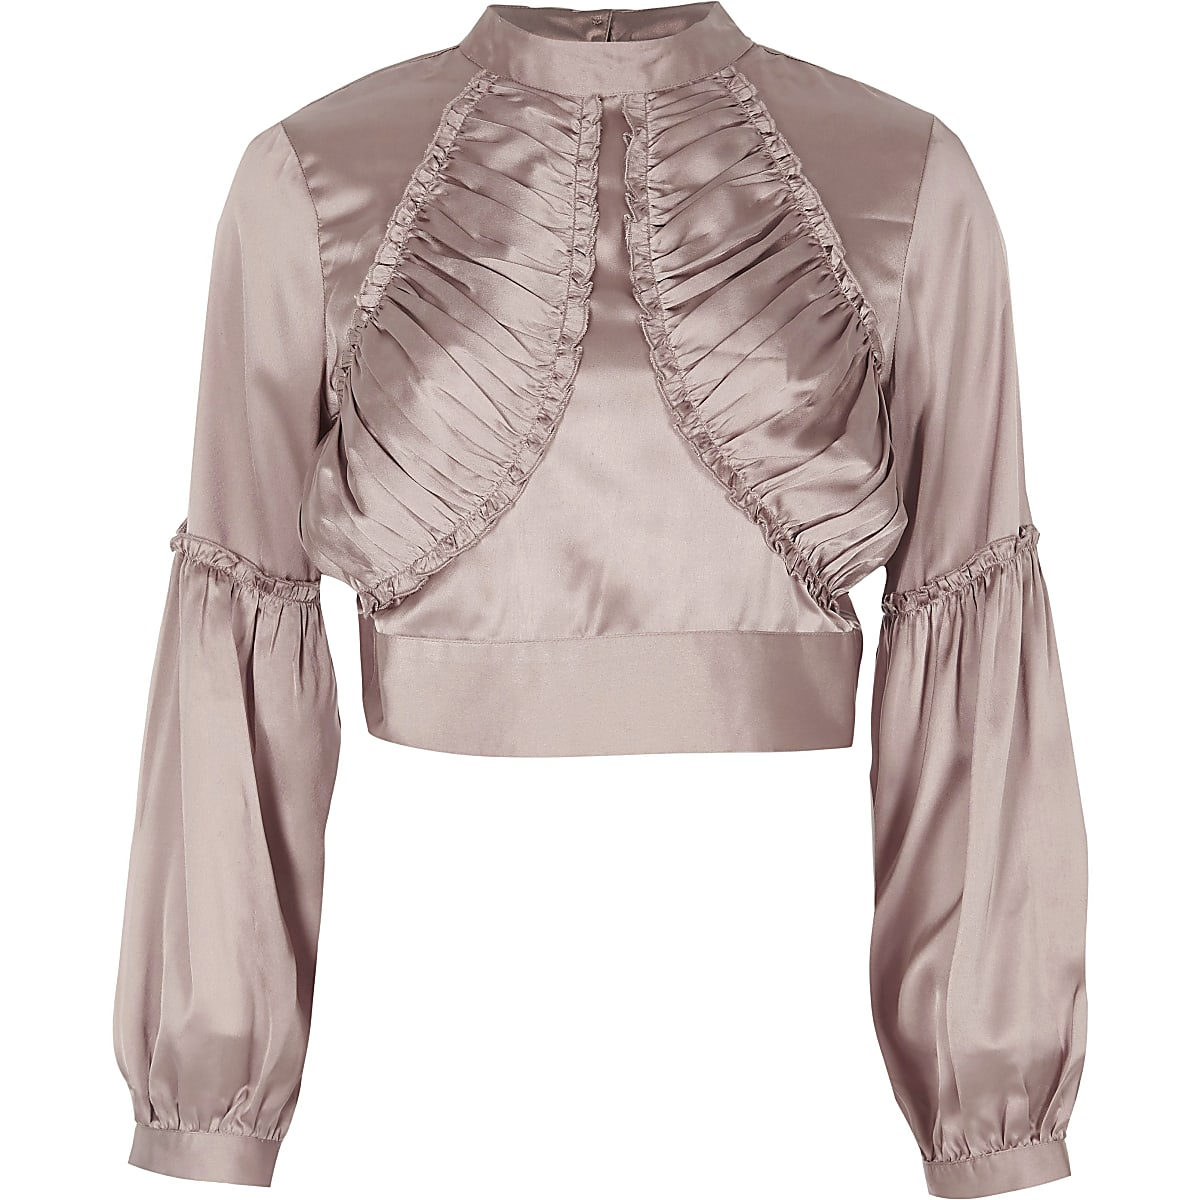 Pink satin ruffle front high neck crop top